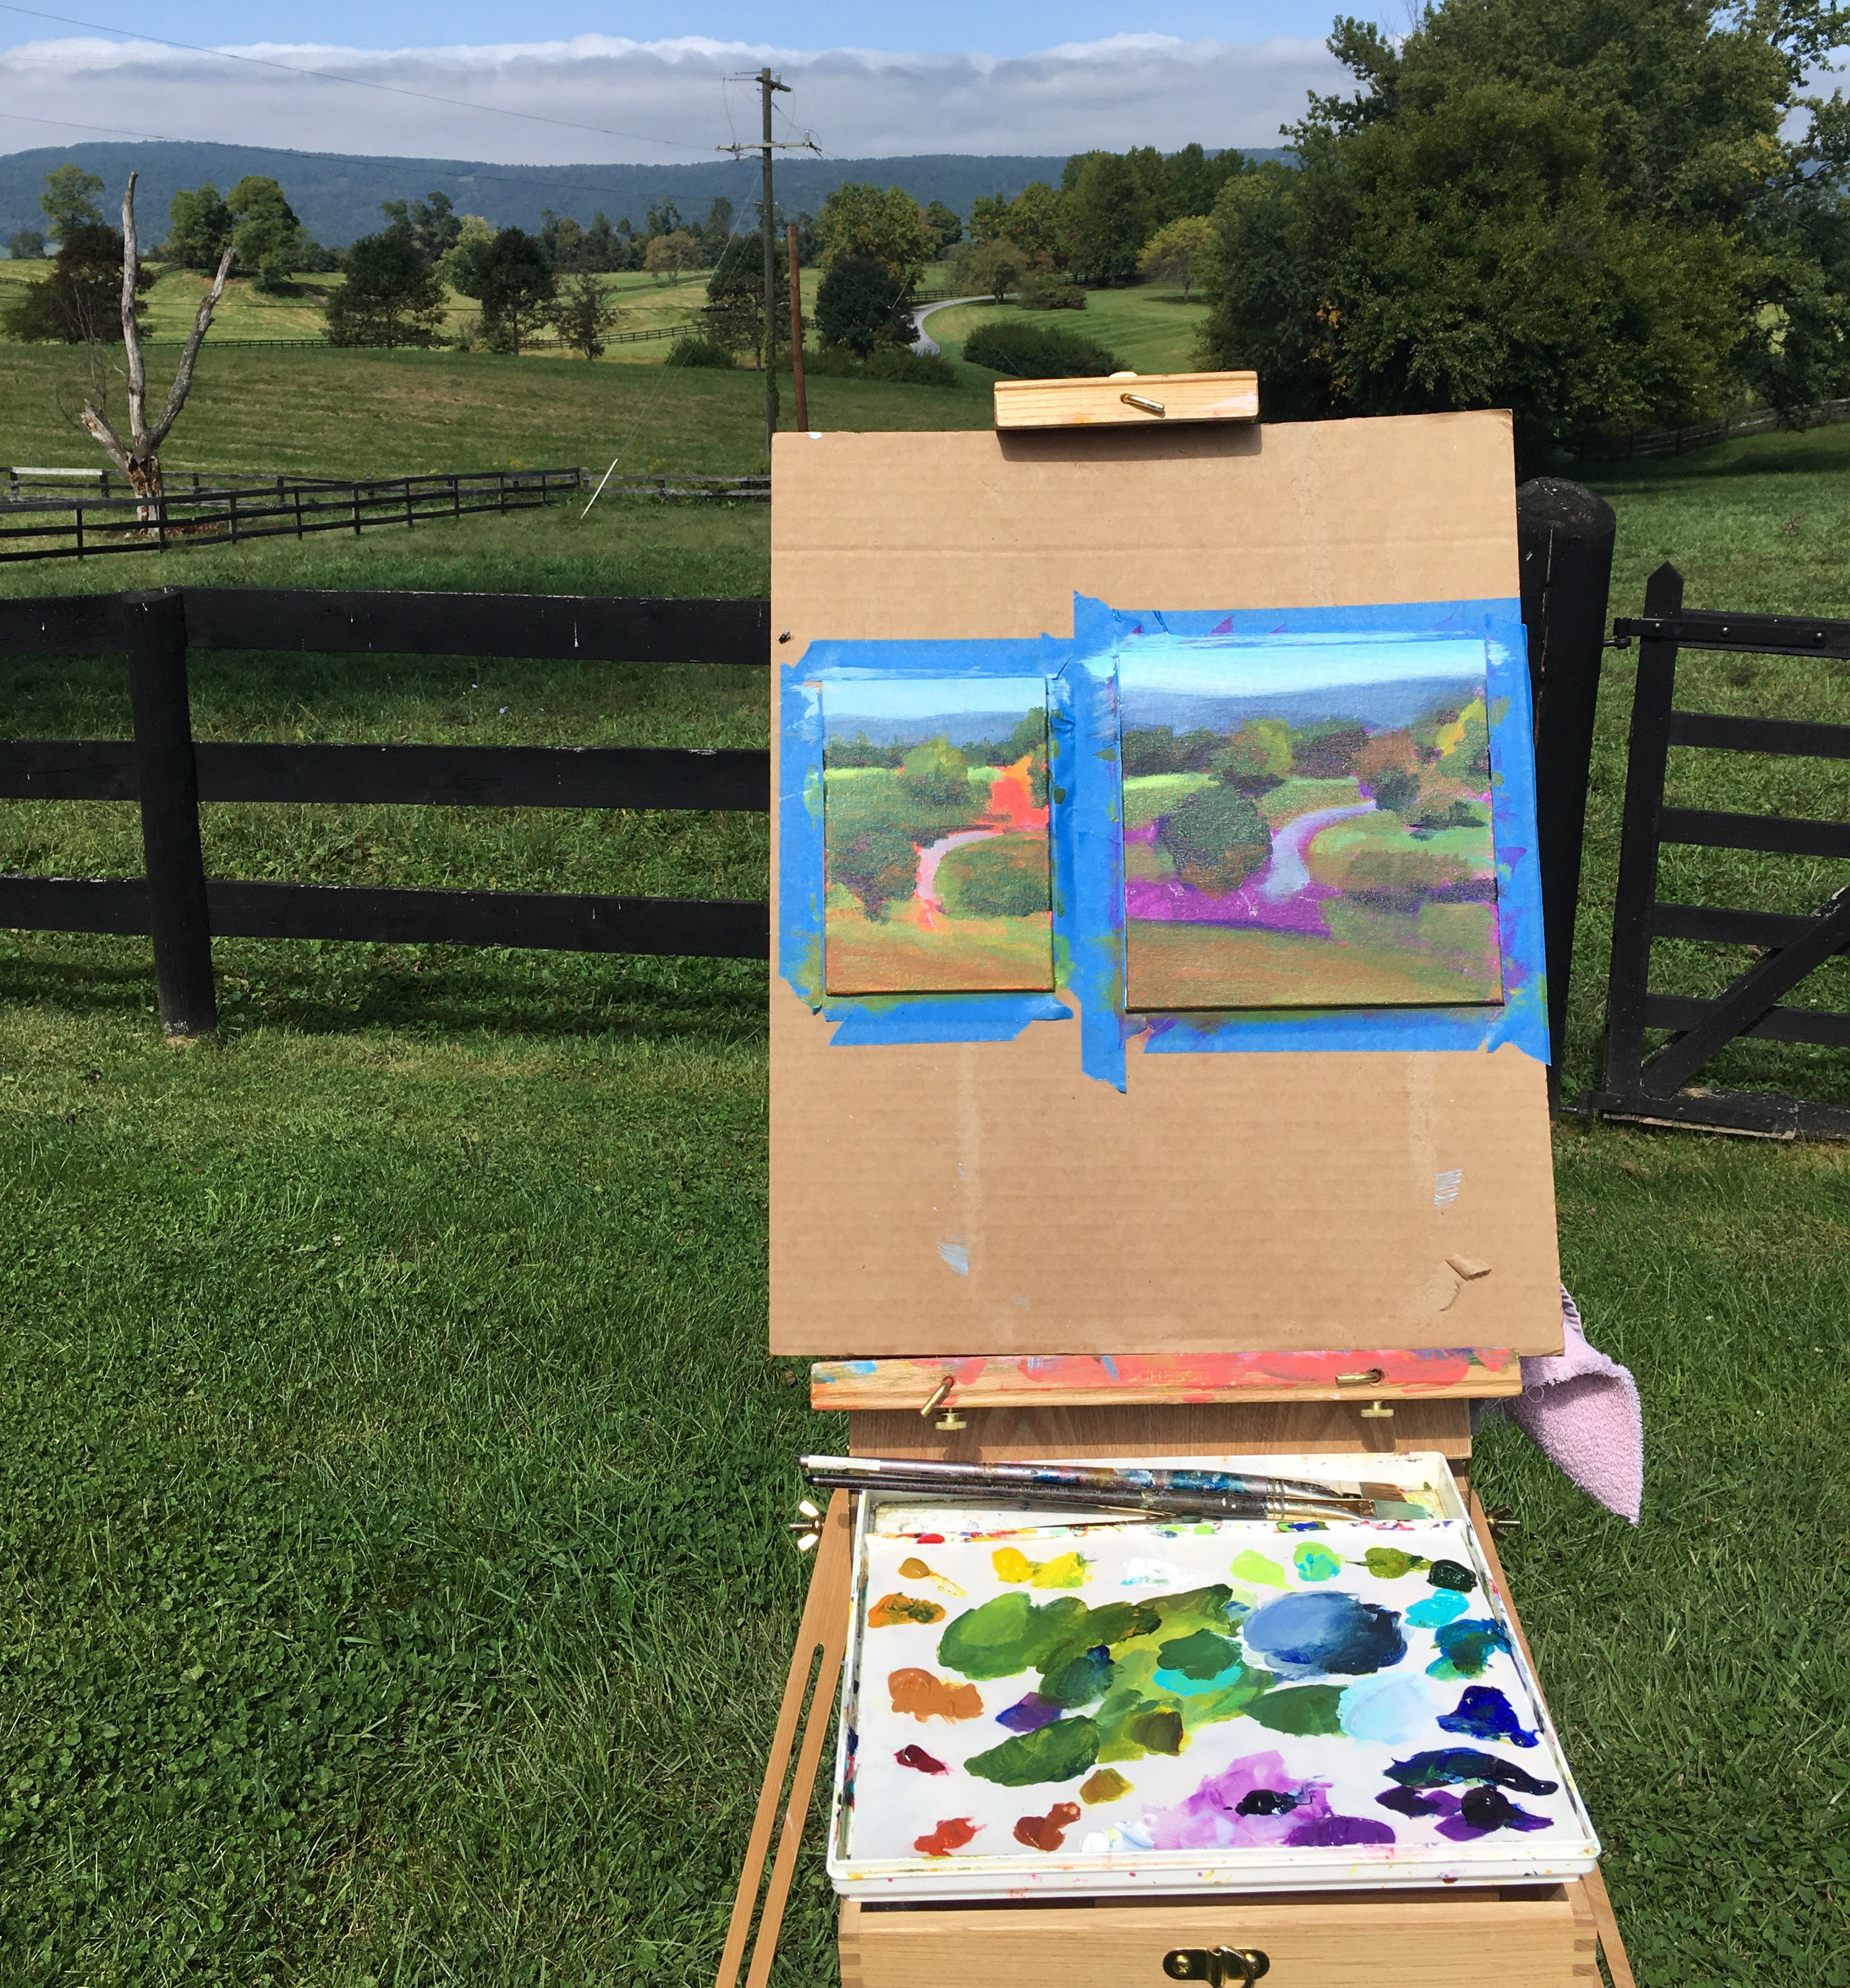 Plein air painting in Faquier county VA. I often work on two paintings at the same time when painting outdoors.